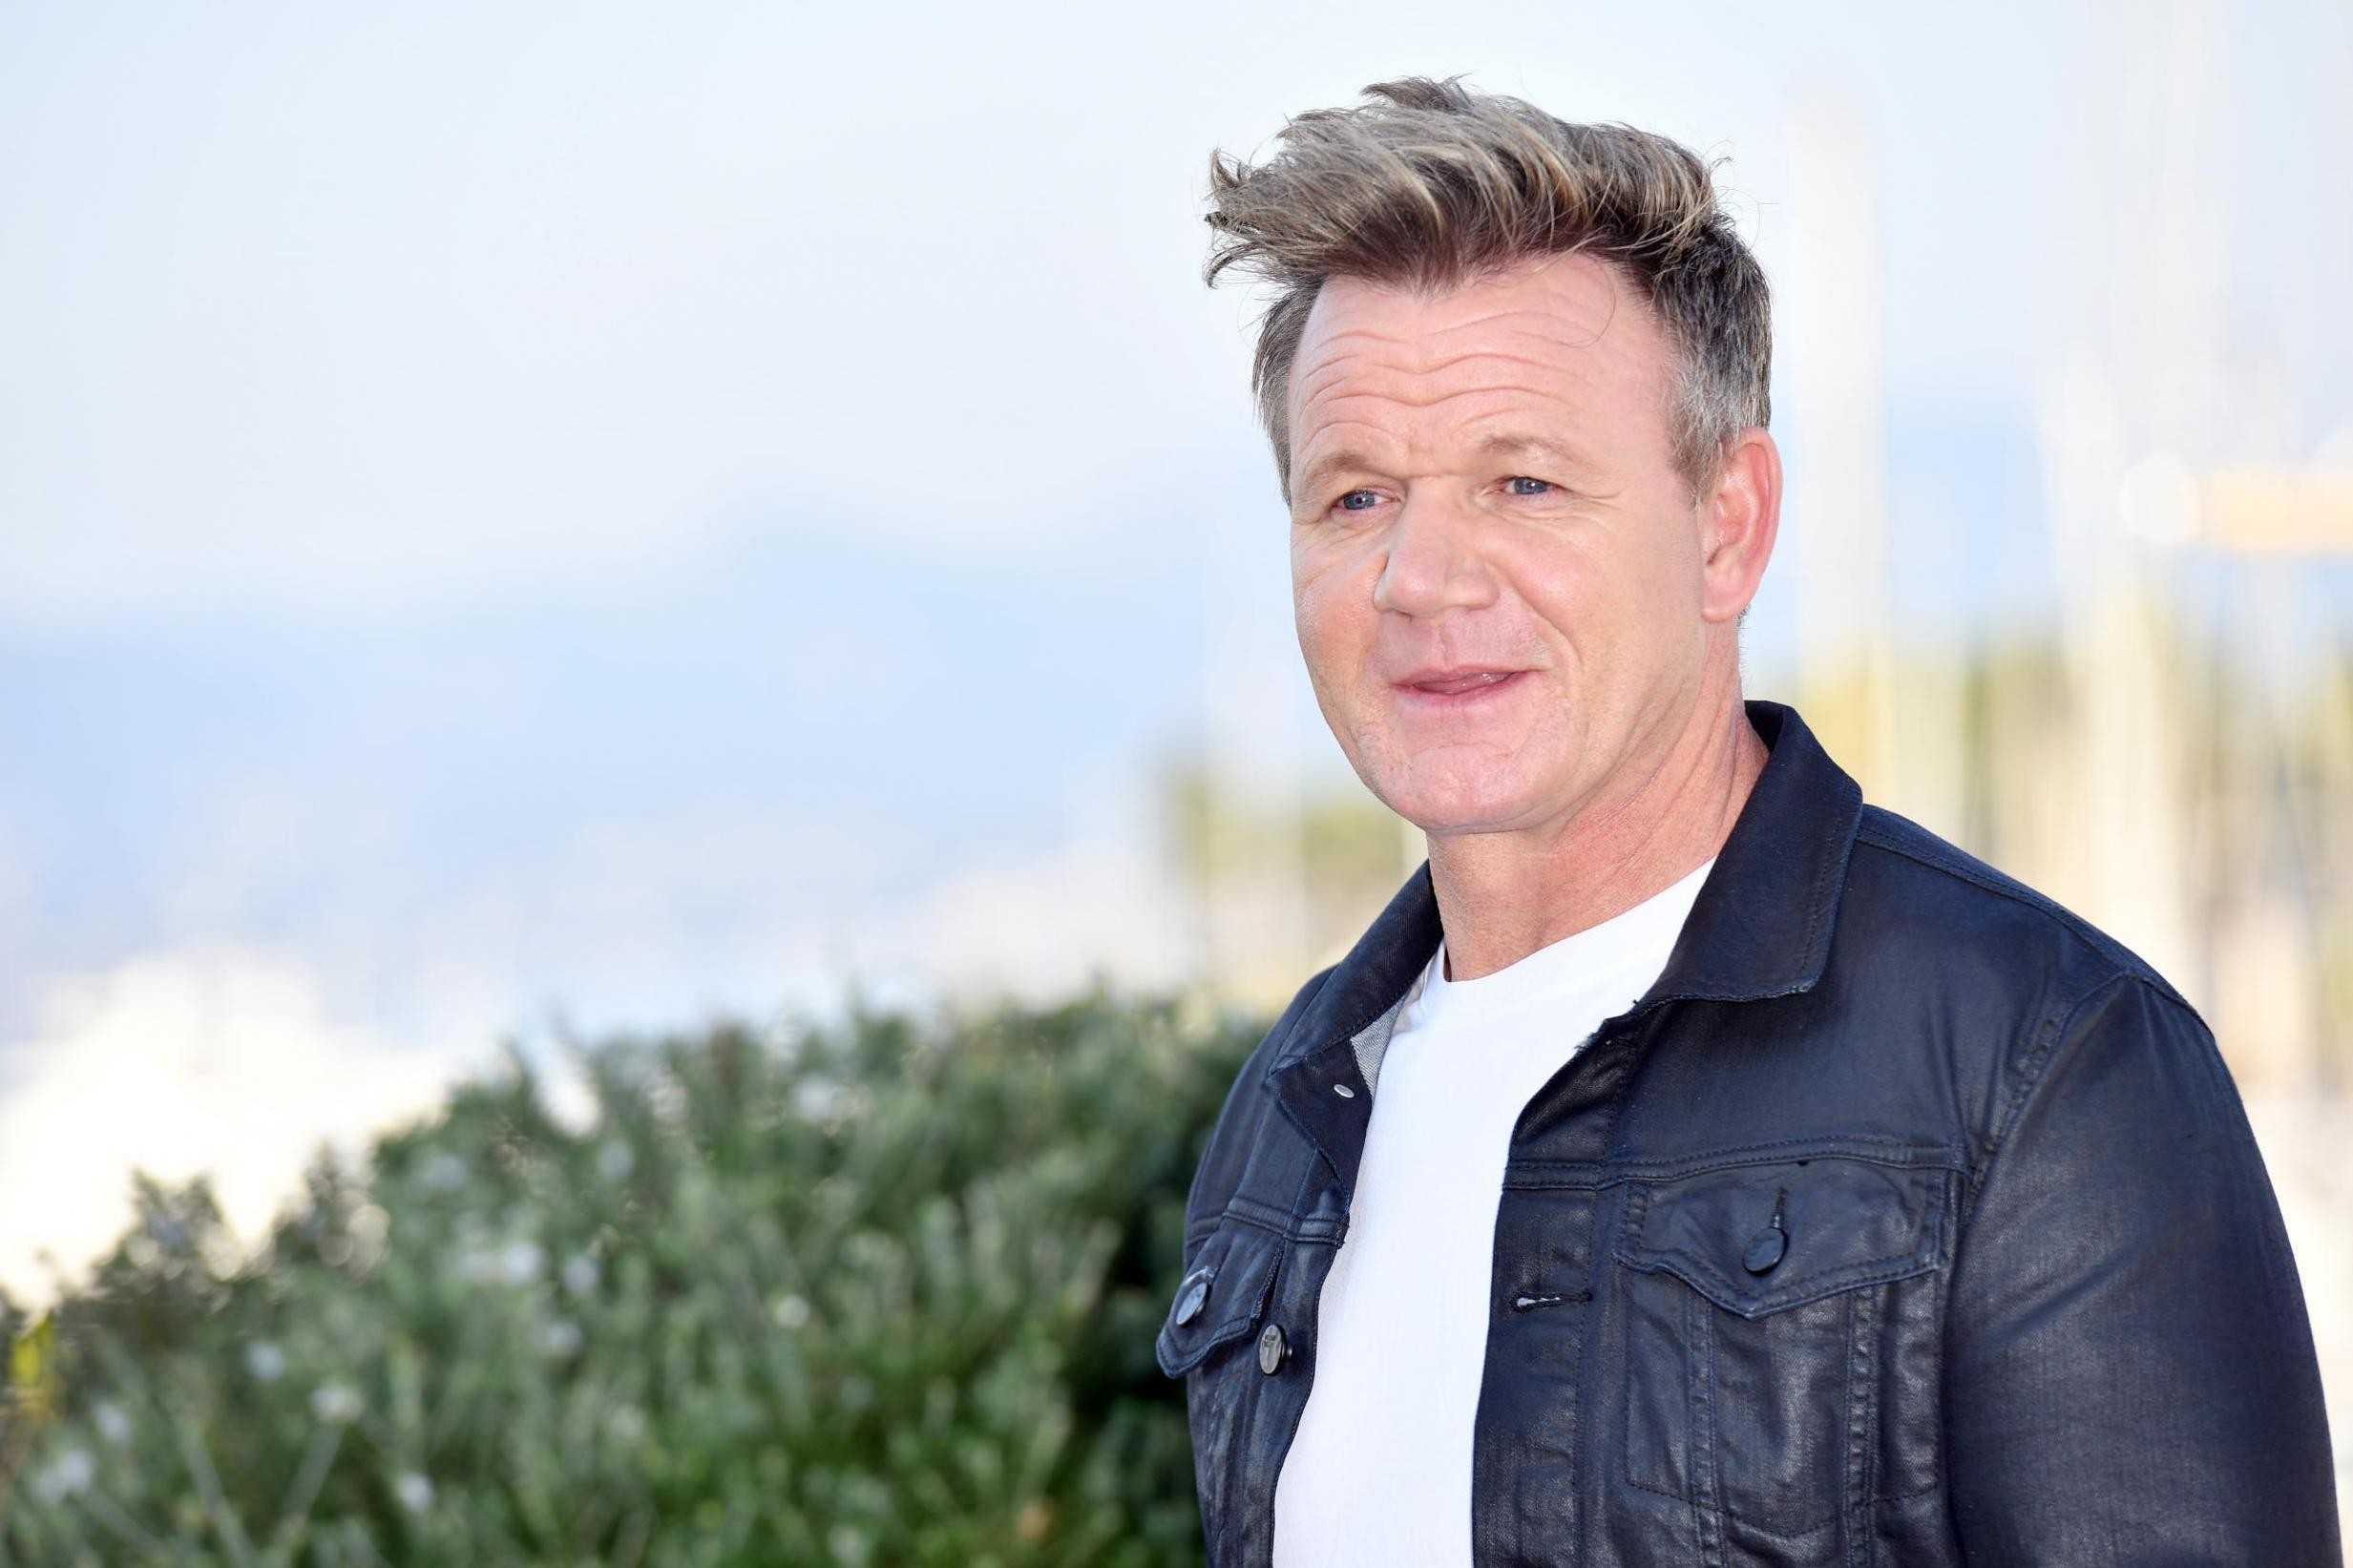 Gordon ramsay latest news breaking stories and comment the gordon ramsay says americans know f all about good food m4hsunfo